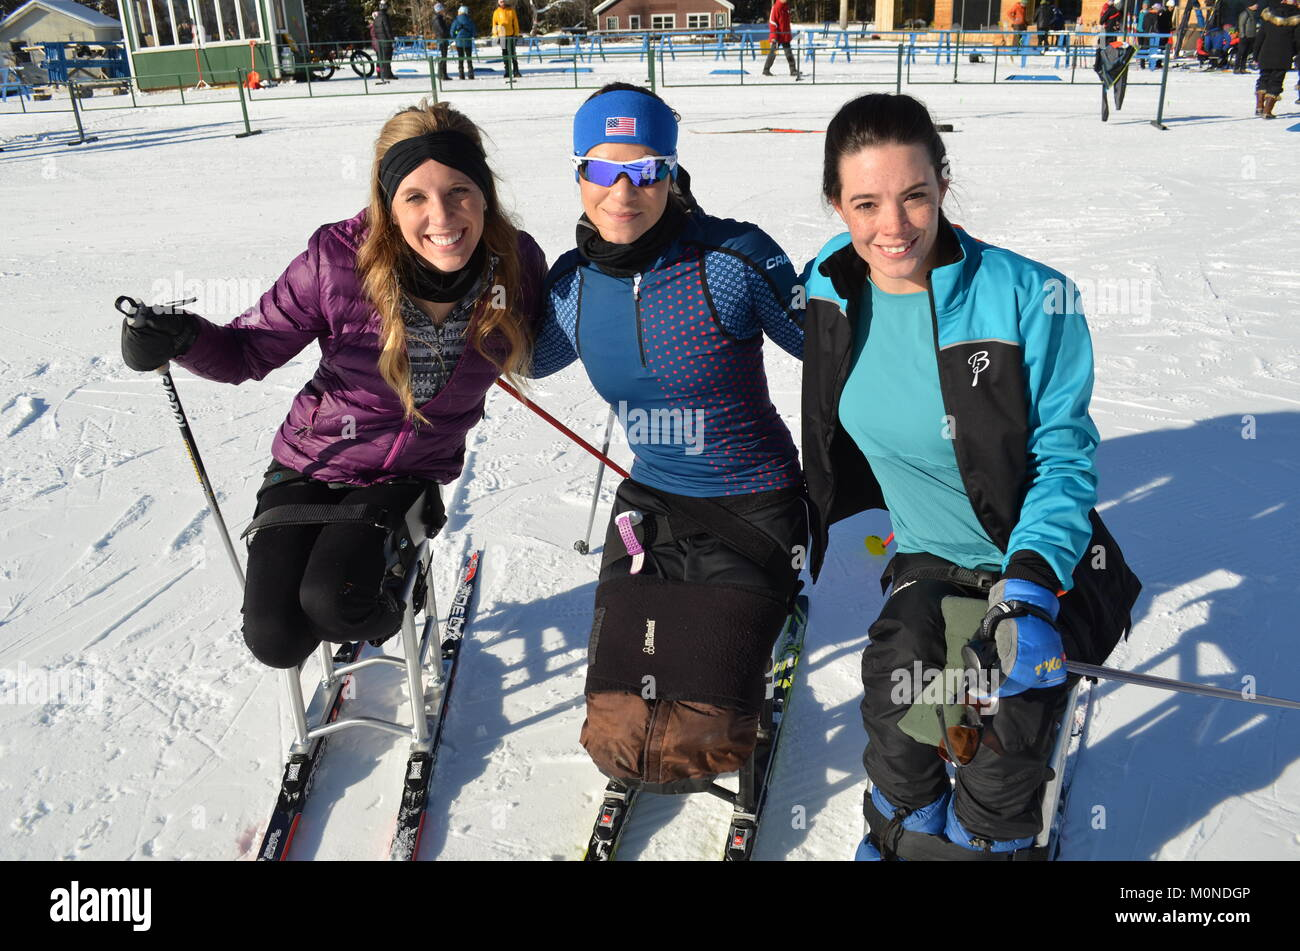 U.S. para skiers (left to right) Brittany Fisher, Oksana Masters, and Joy Rondeau at 2016 U.S. Paralympics Sit Ski - Stock Image